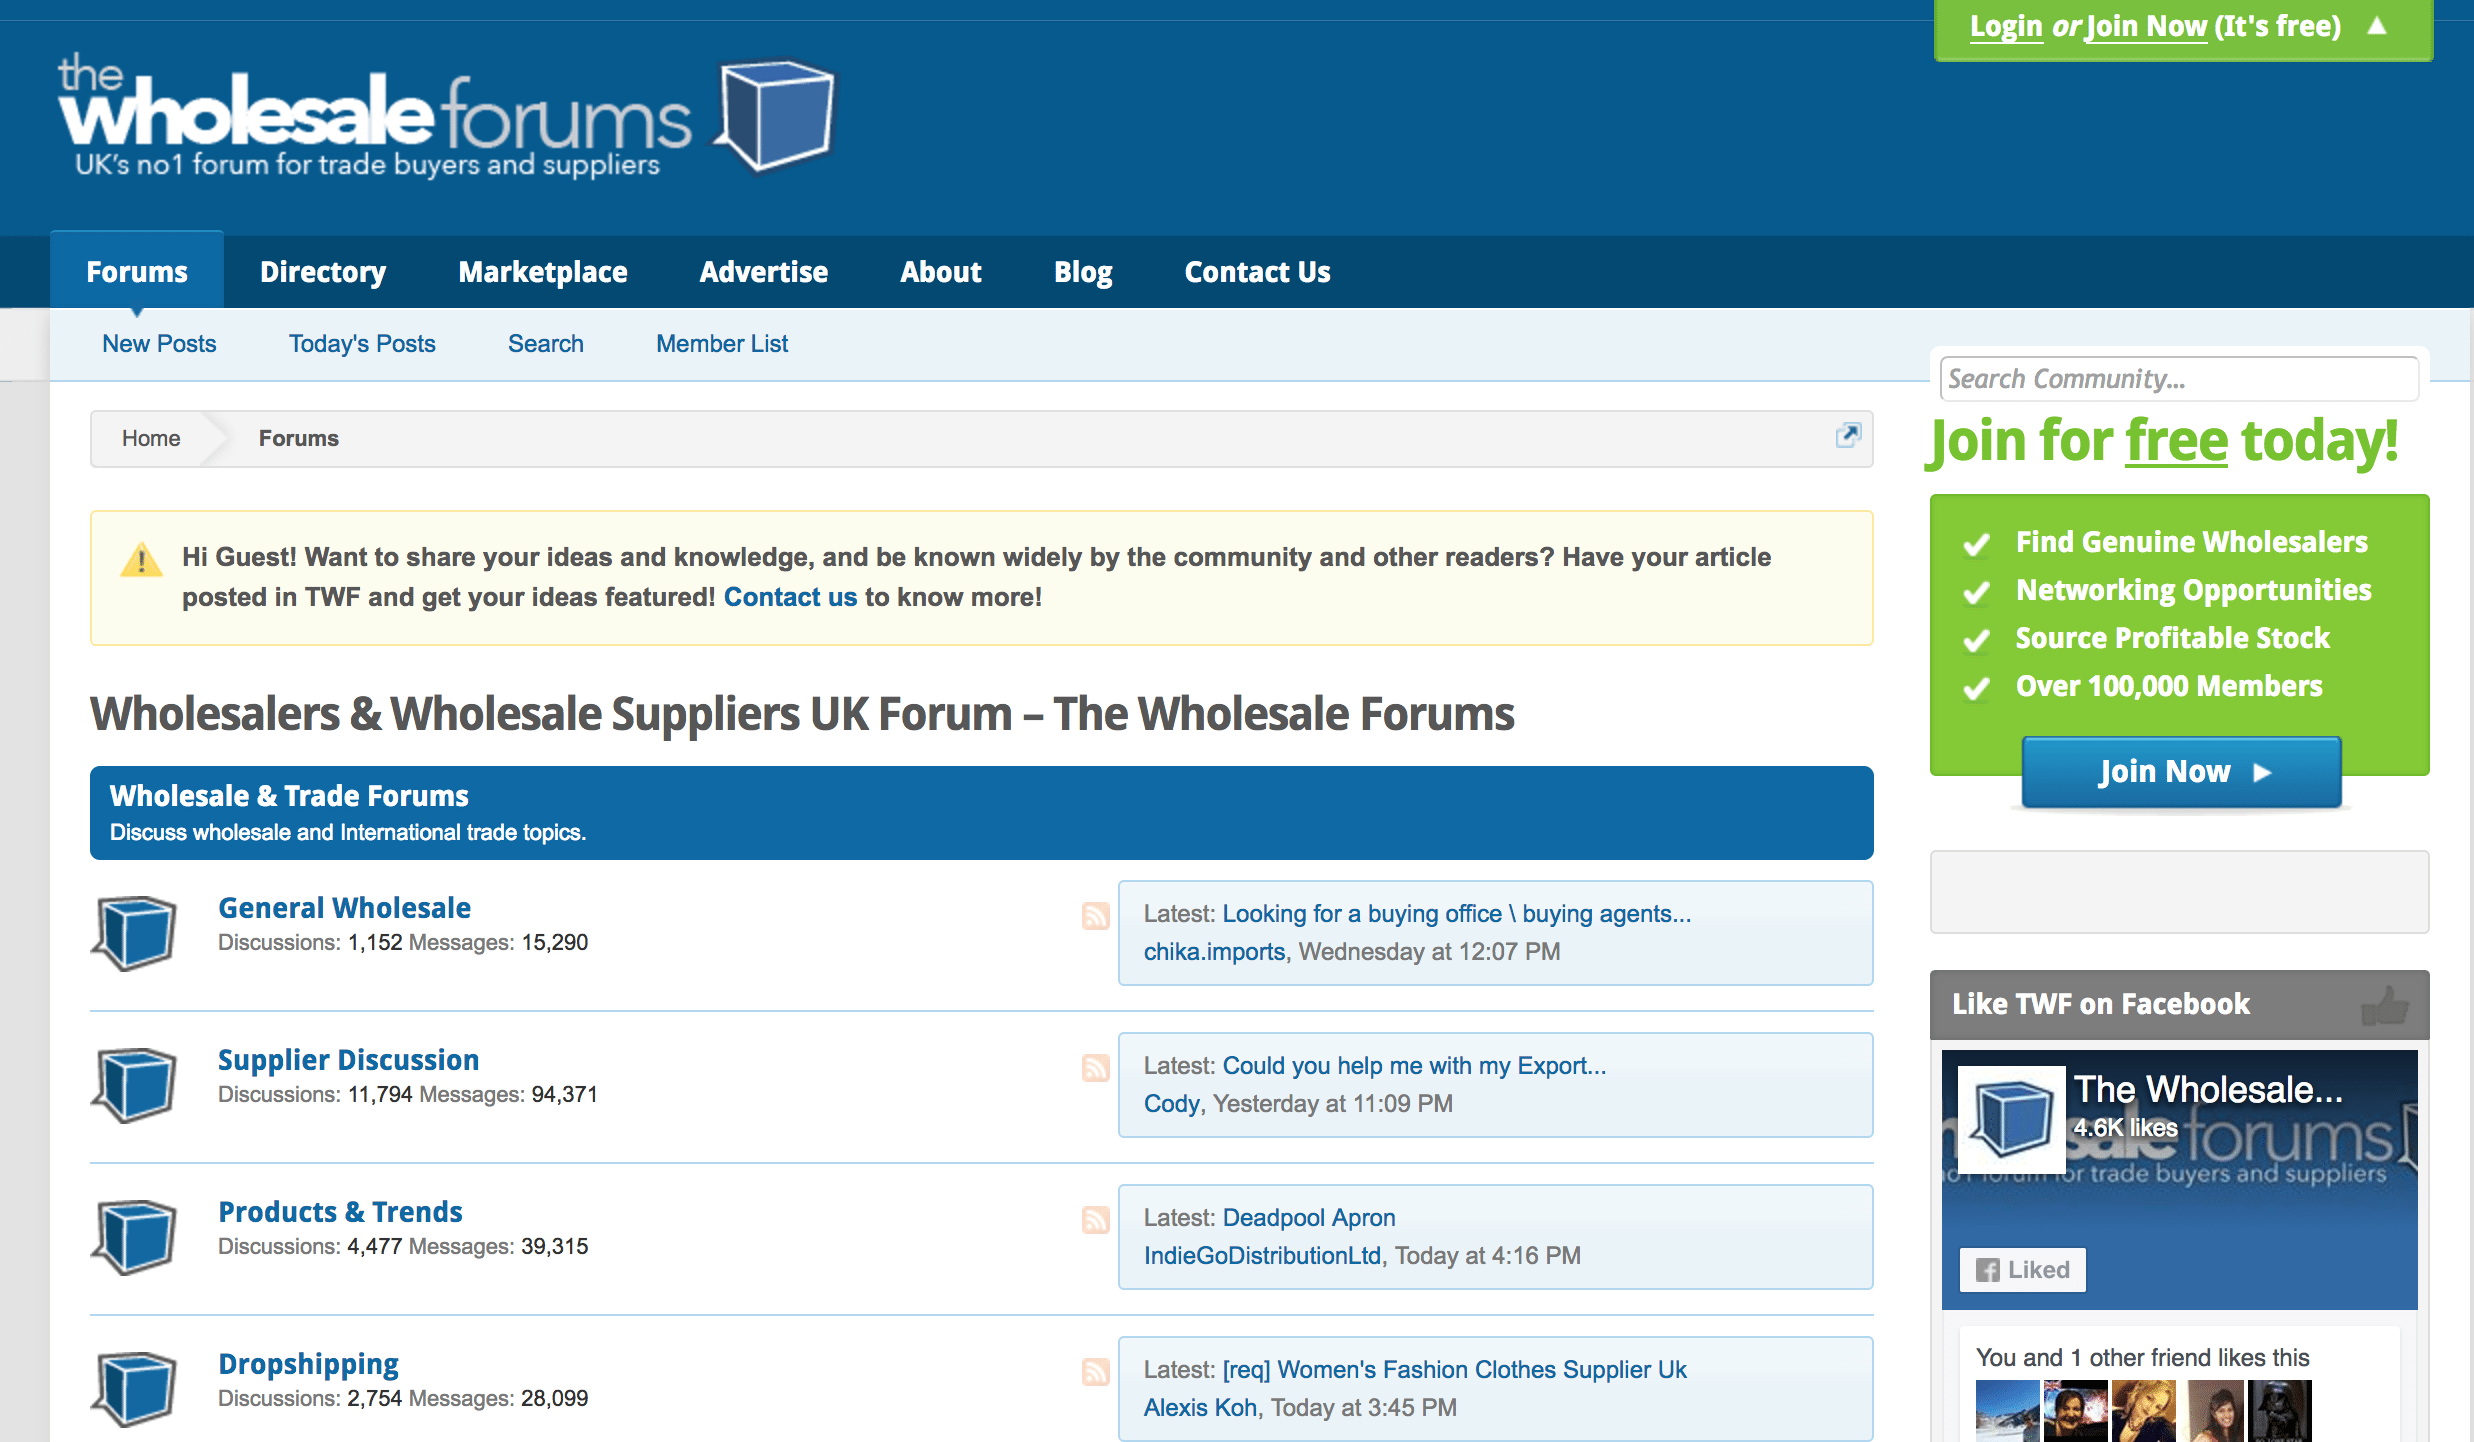 5 Forums Every Wholesalers Should Know | Wholesale Forums